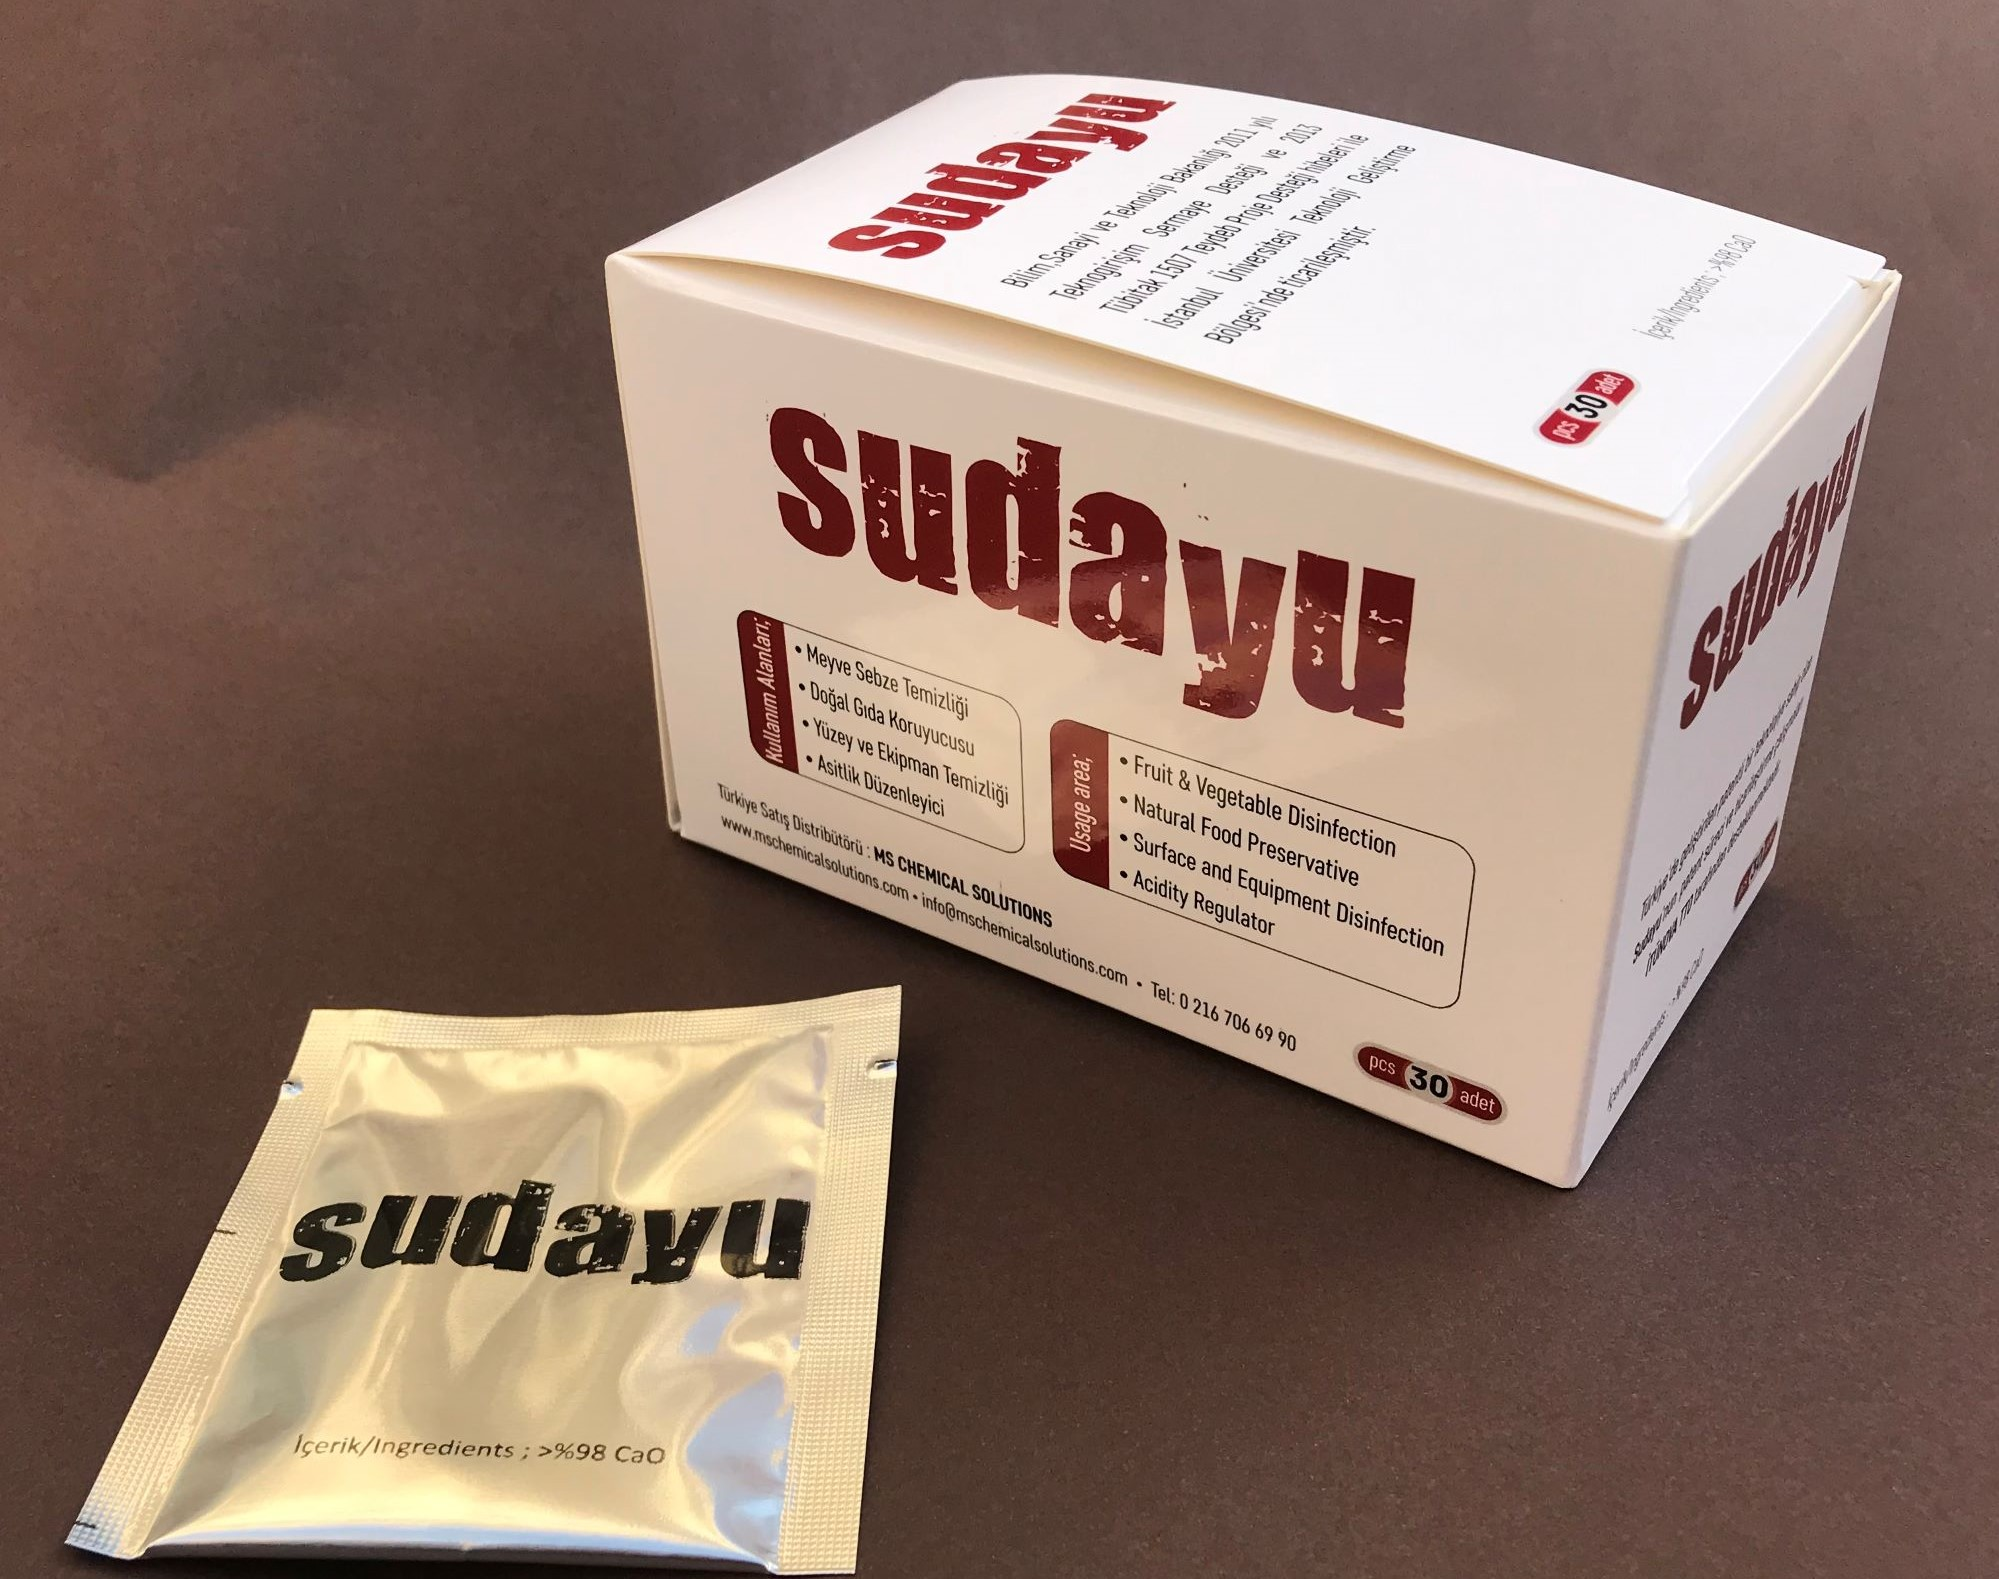 We started to sell our new product SUDAYU